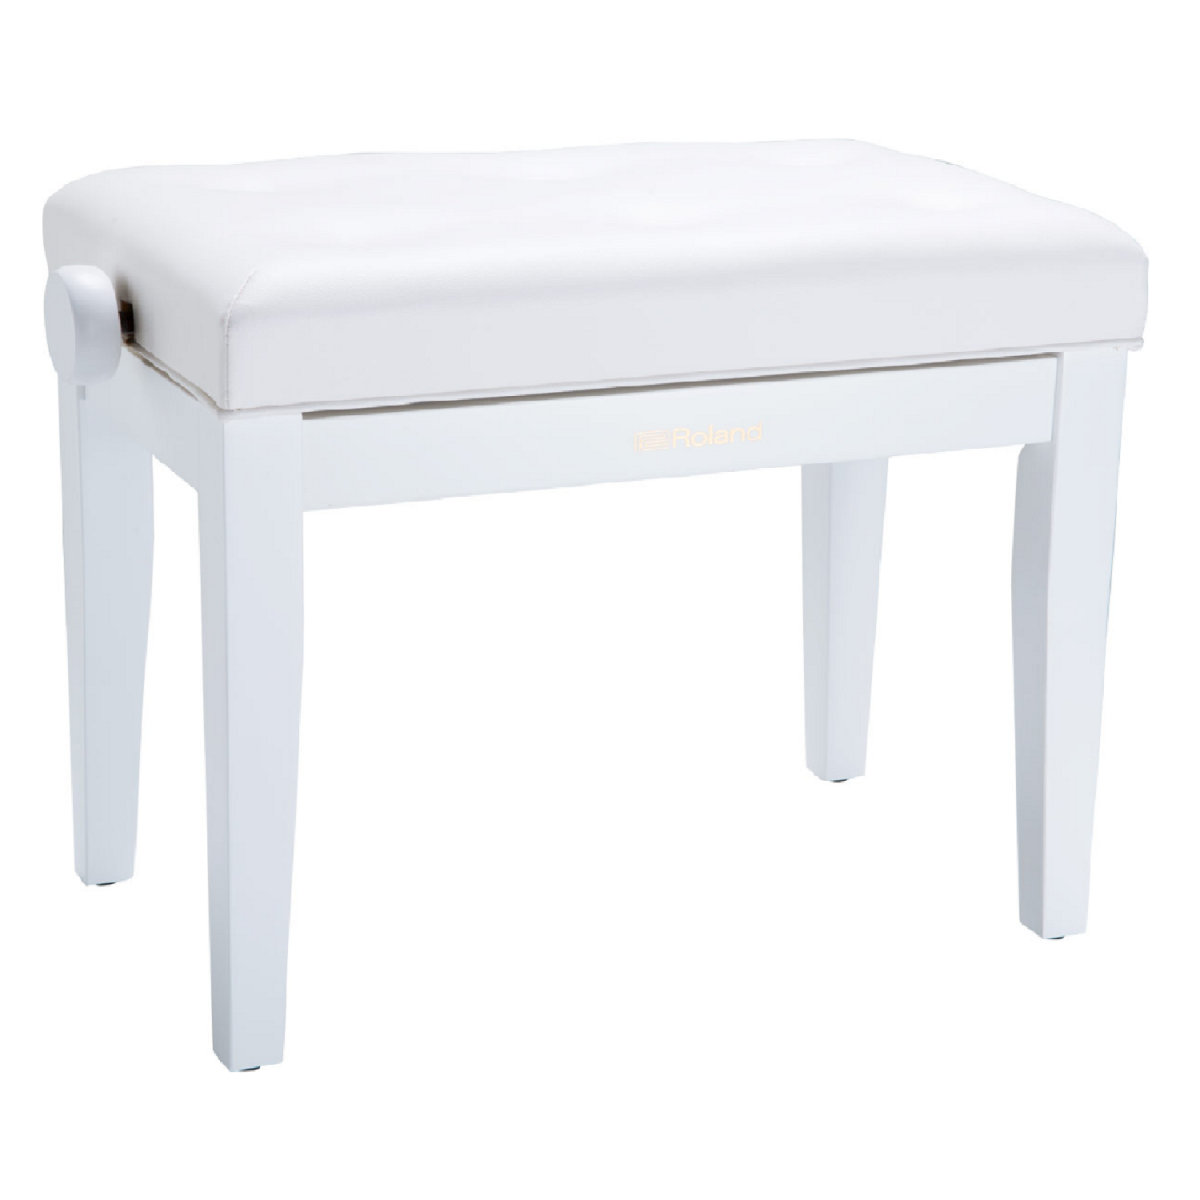 Roland - Piano Bench with Cushioned Seat - Satin white - RPB300WH